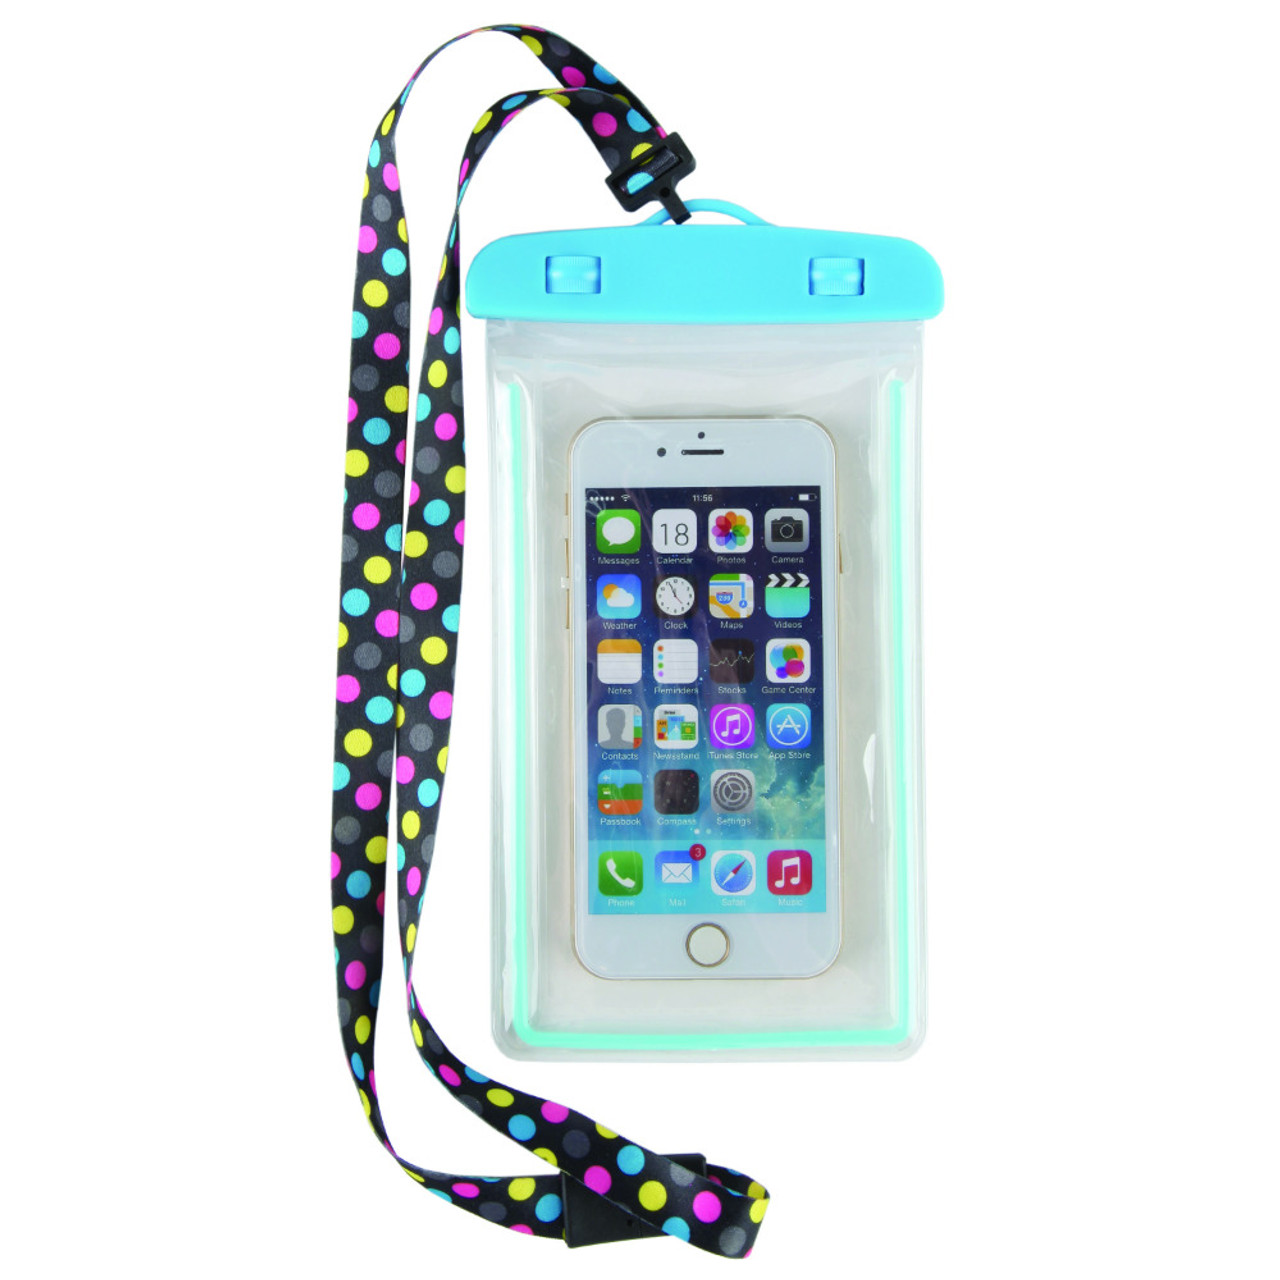 buy online 696c4 f1655 Aqua Dot Waterproof Phone Case Lanyard